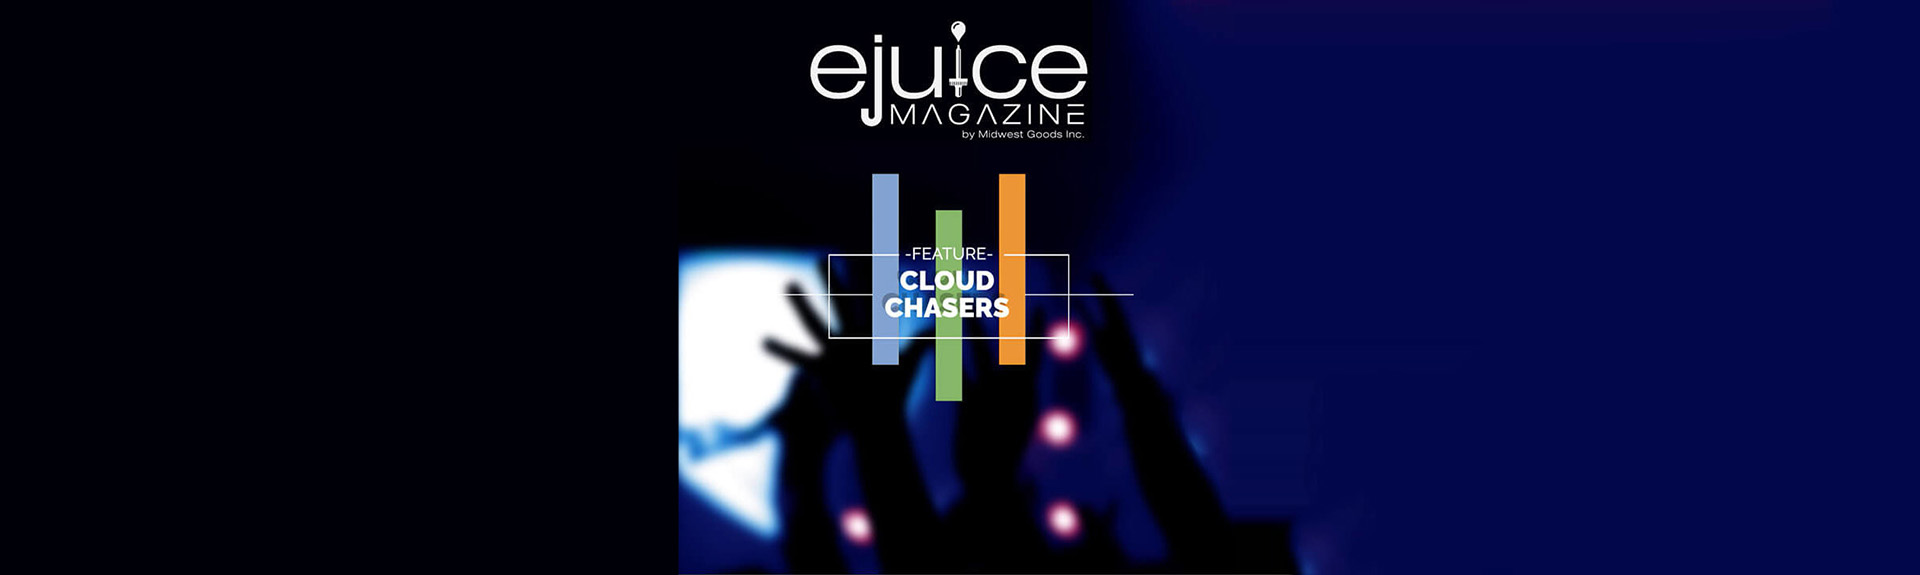 cloud-chasers-featured-top-banner-ejuice-magazine-vape-e1522686073484